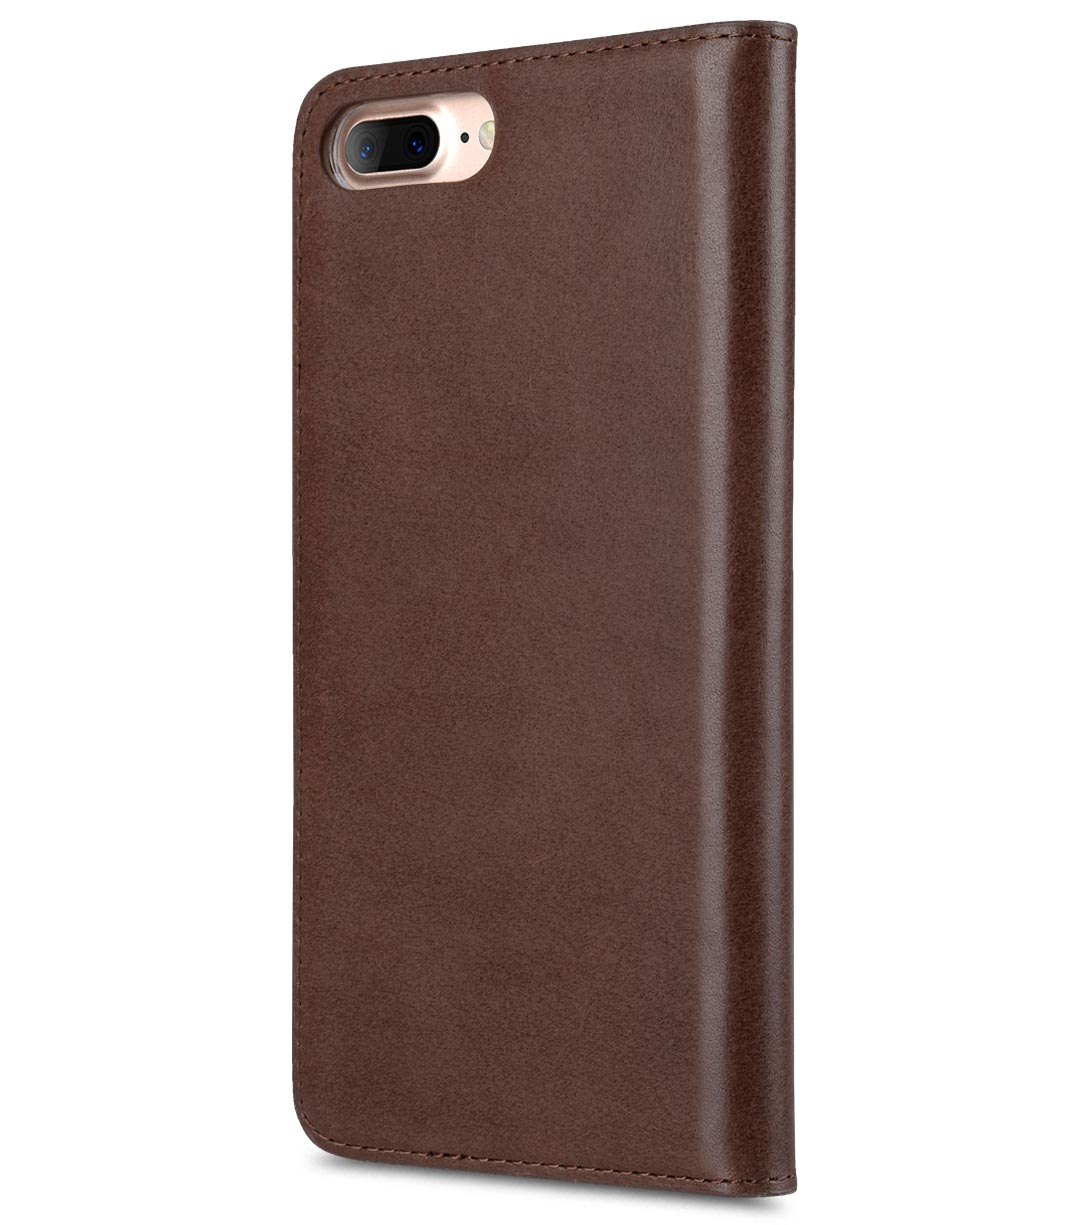 "Melkco Premium Cowhide Leather Herman Series Book Style Case for Apple iPhone 7 / 8 Plus (5.5"") (Brown)"